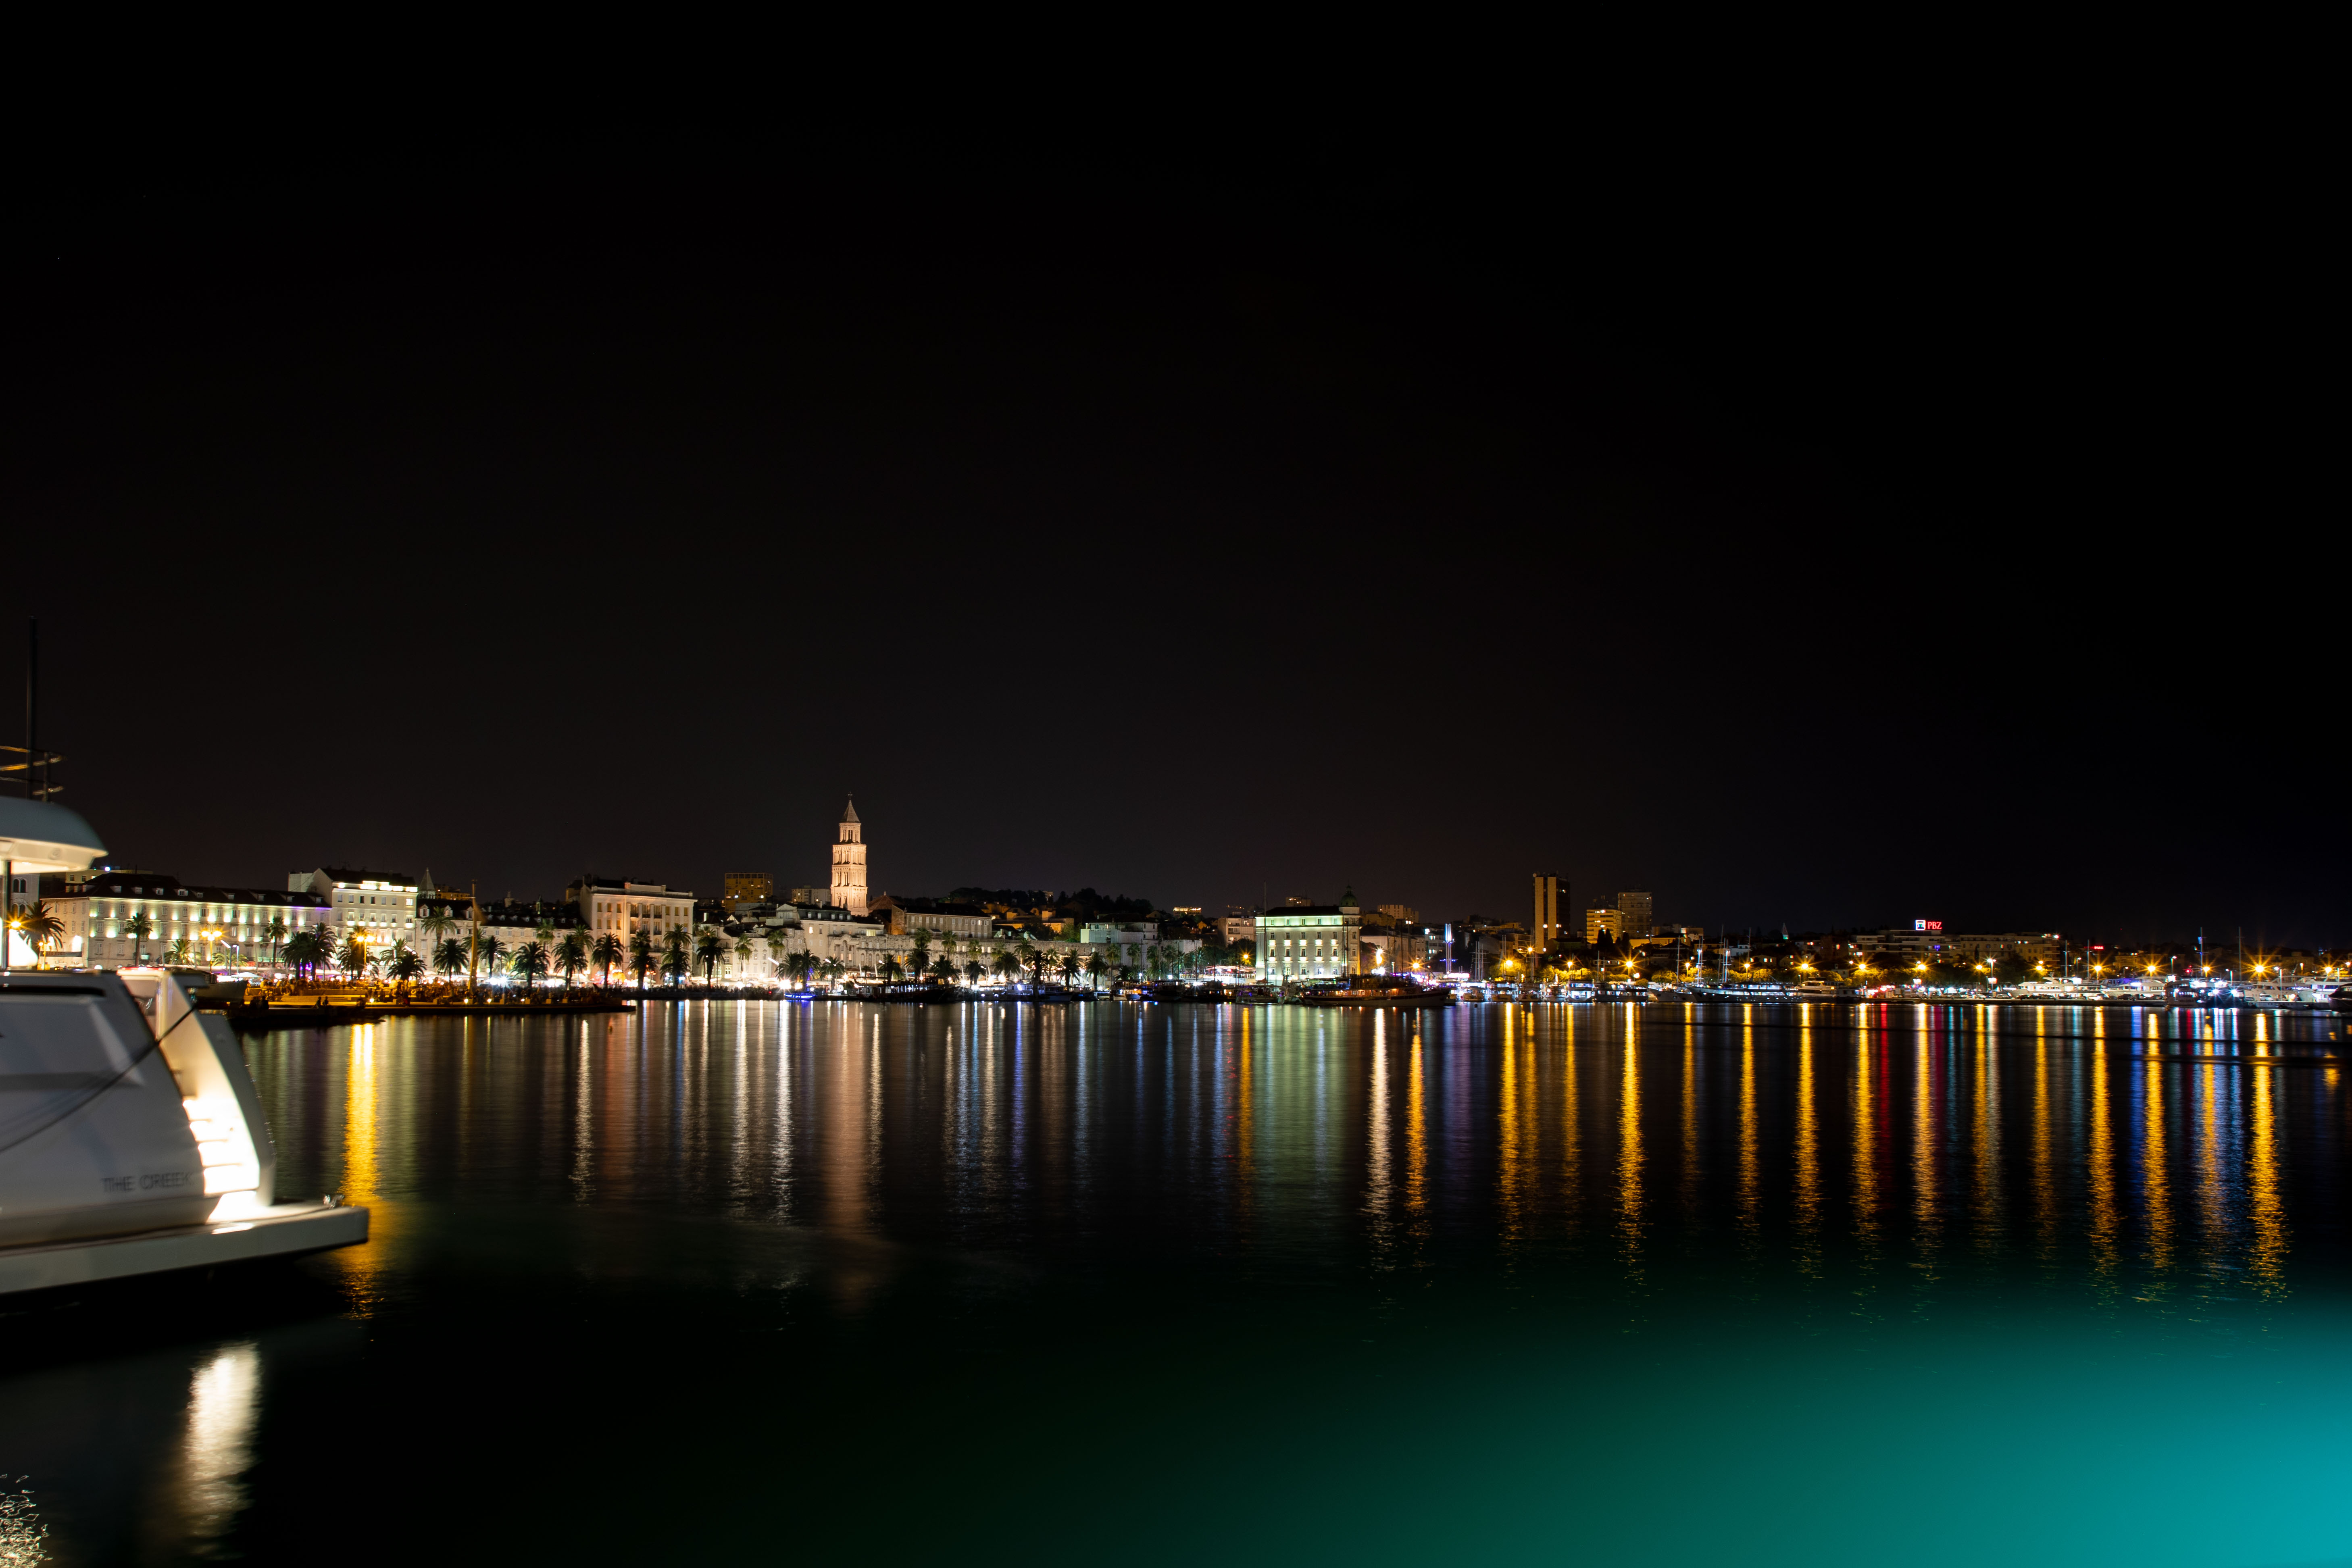 574B2515_c.jpg -  Split  at night